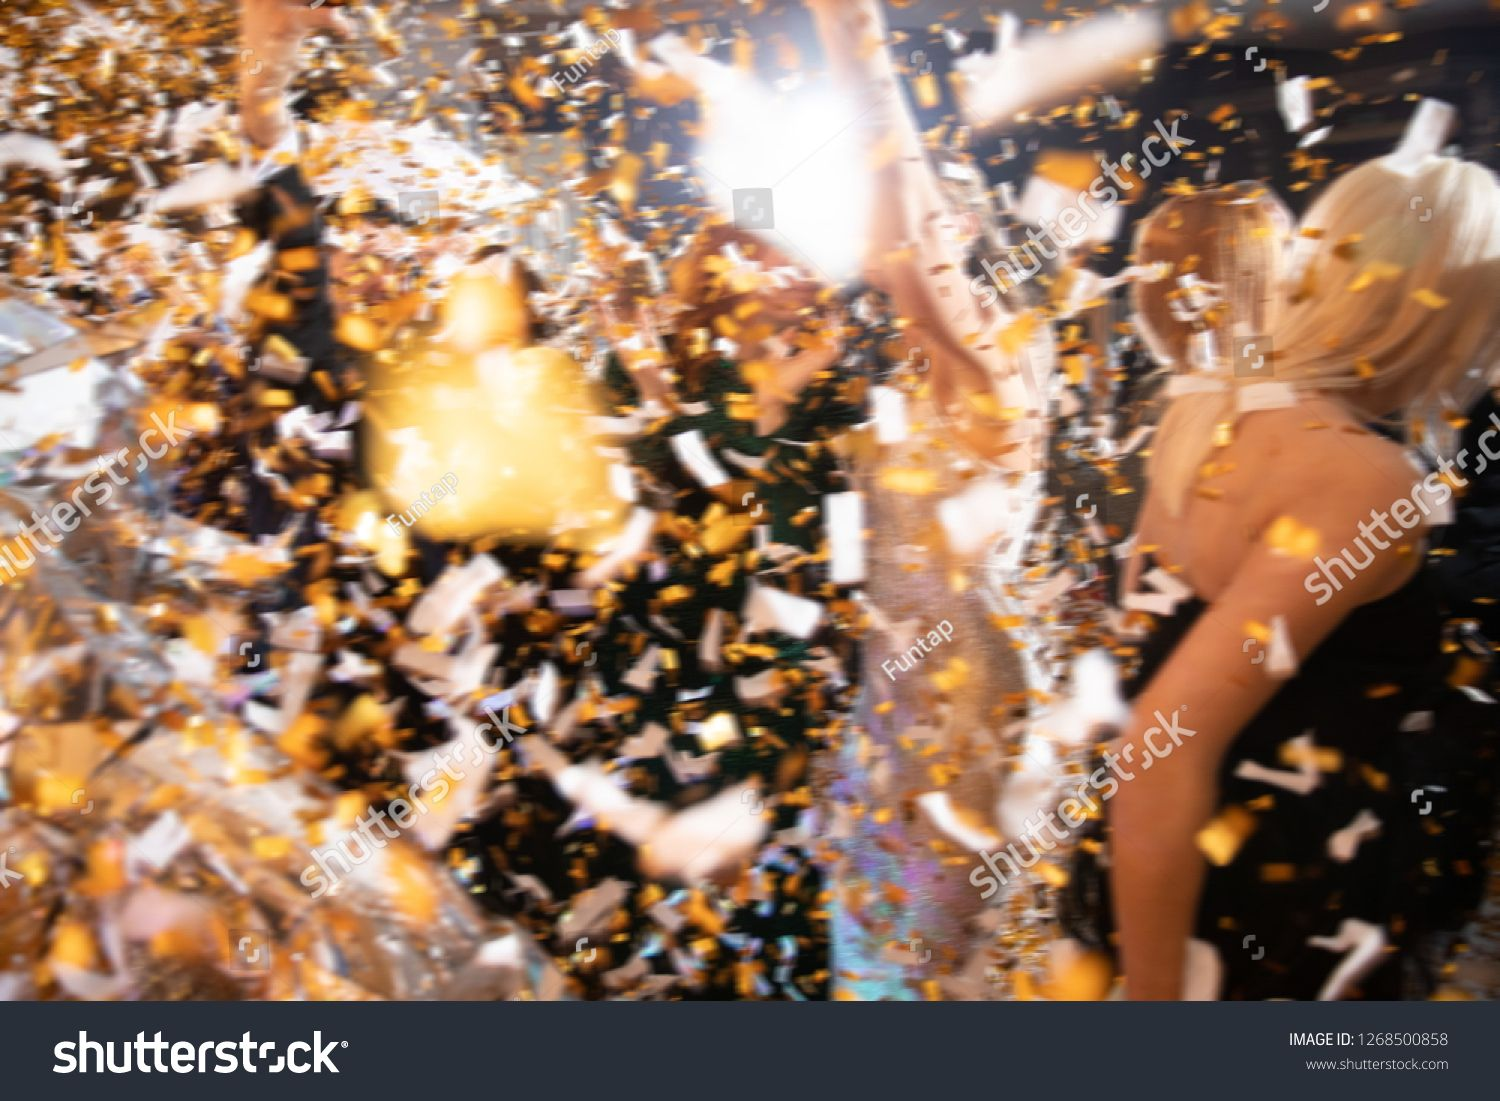 The disco, Banquet, people blurred background dancing. New year celebration. #Ad , #affiliate, #people#blurred#disco#Banquet